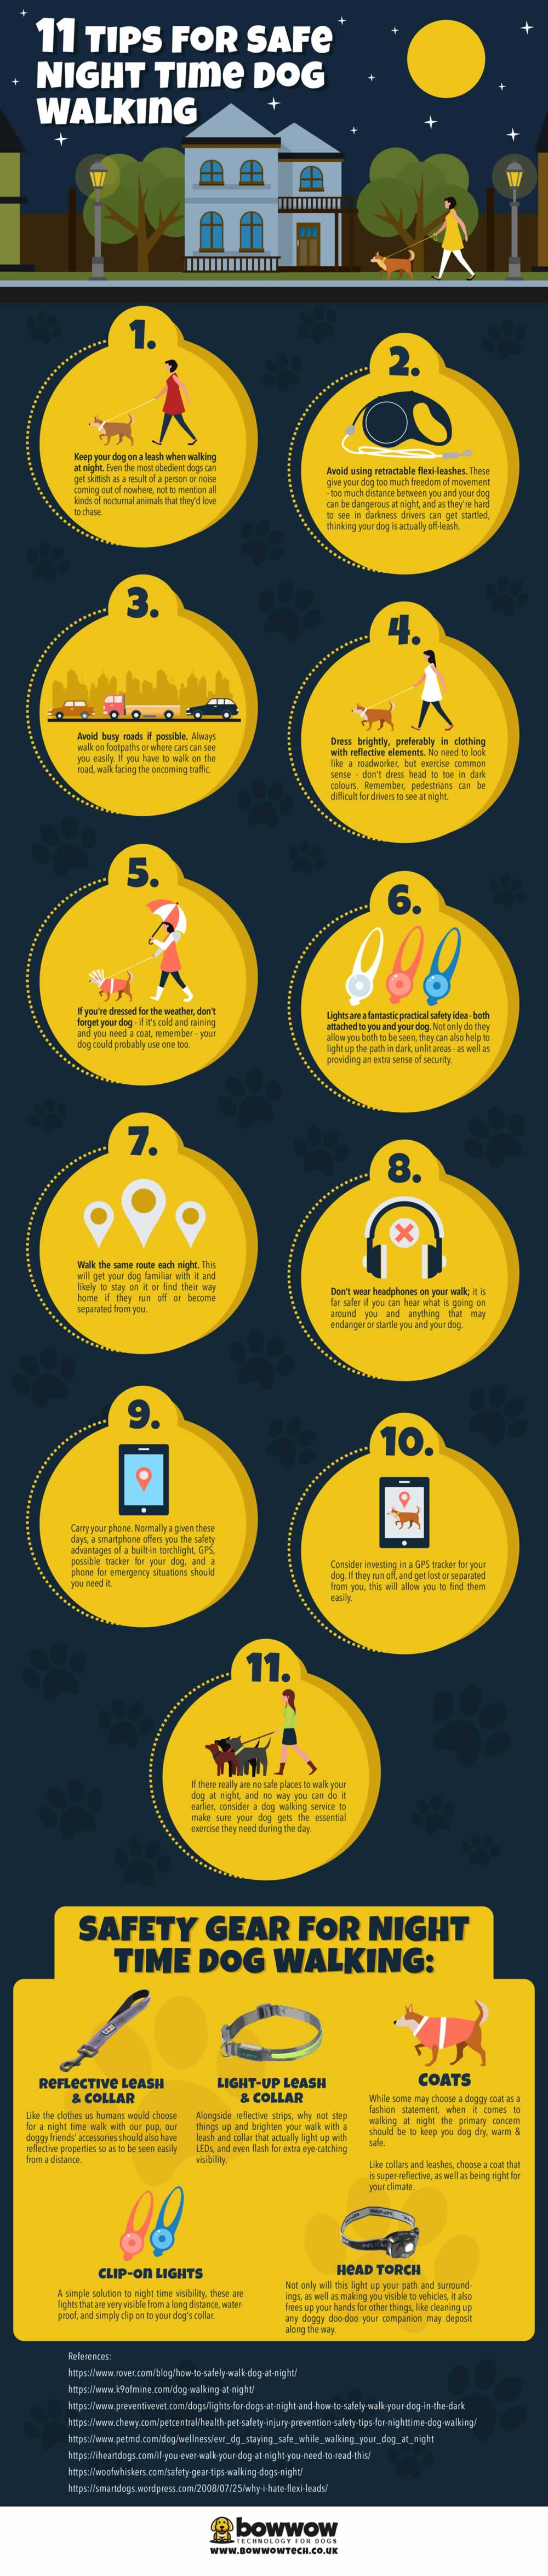 How to Ensure Your Dogs Safety During Night-Time Walks - Infographic